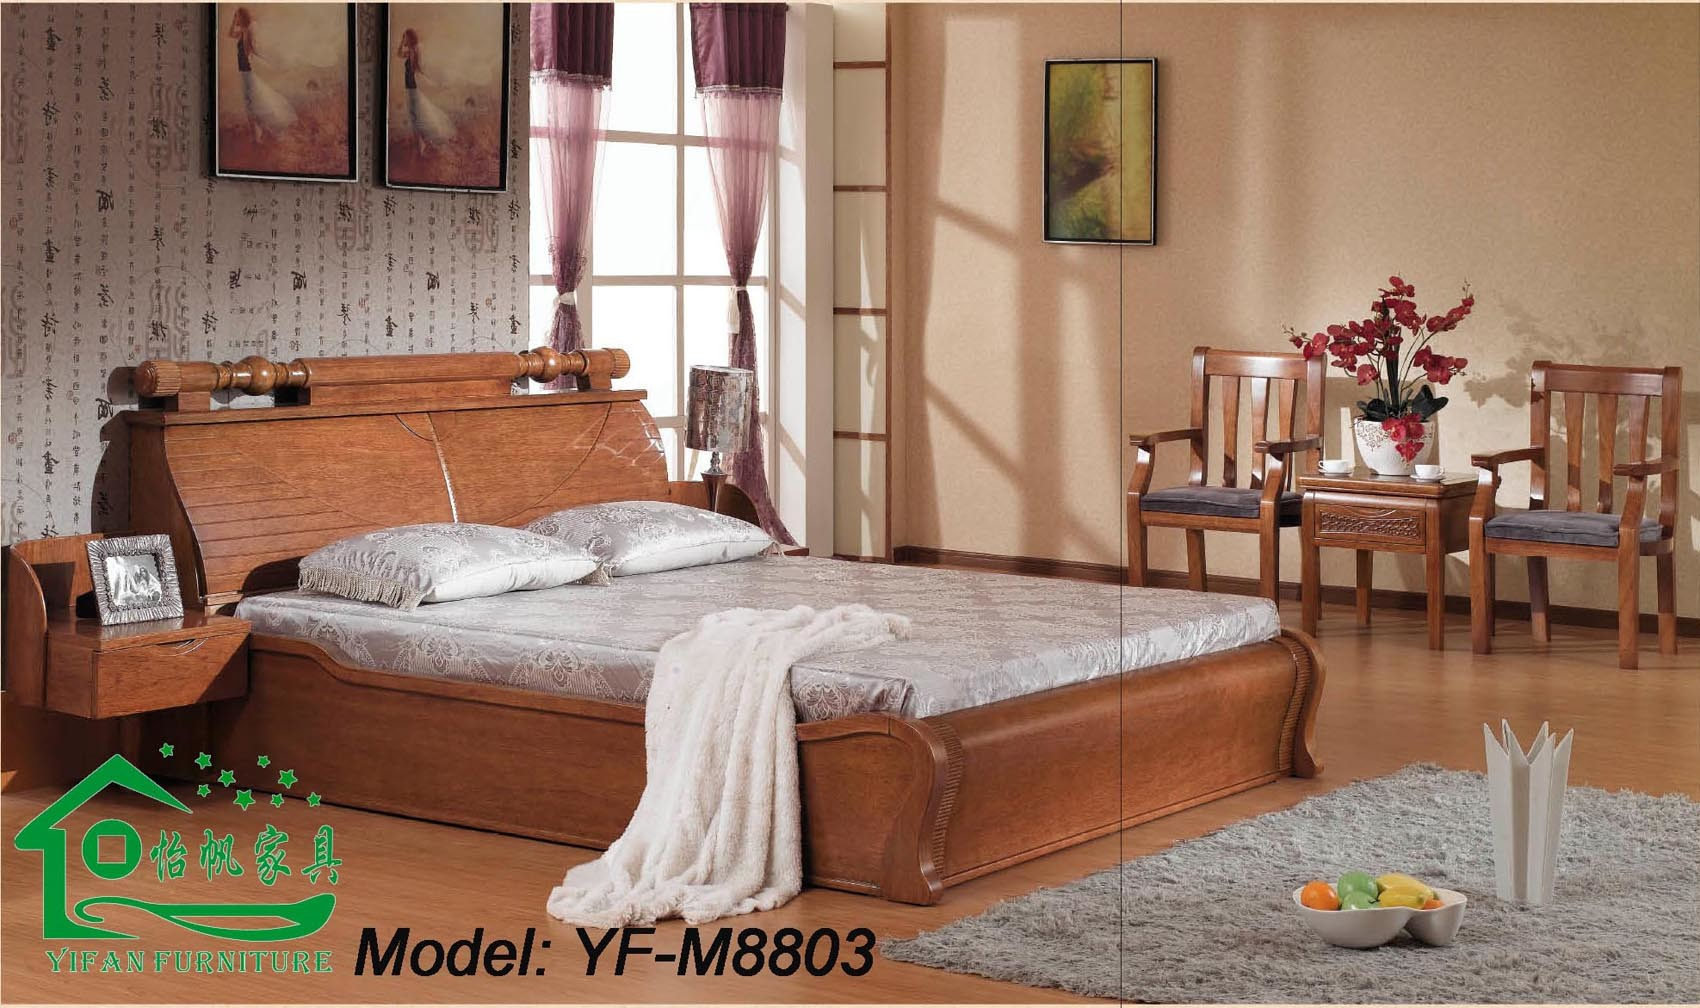 Classic Solid Wood Bedroom Furniture (YF-M8803) photo,Details